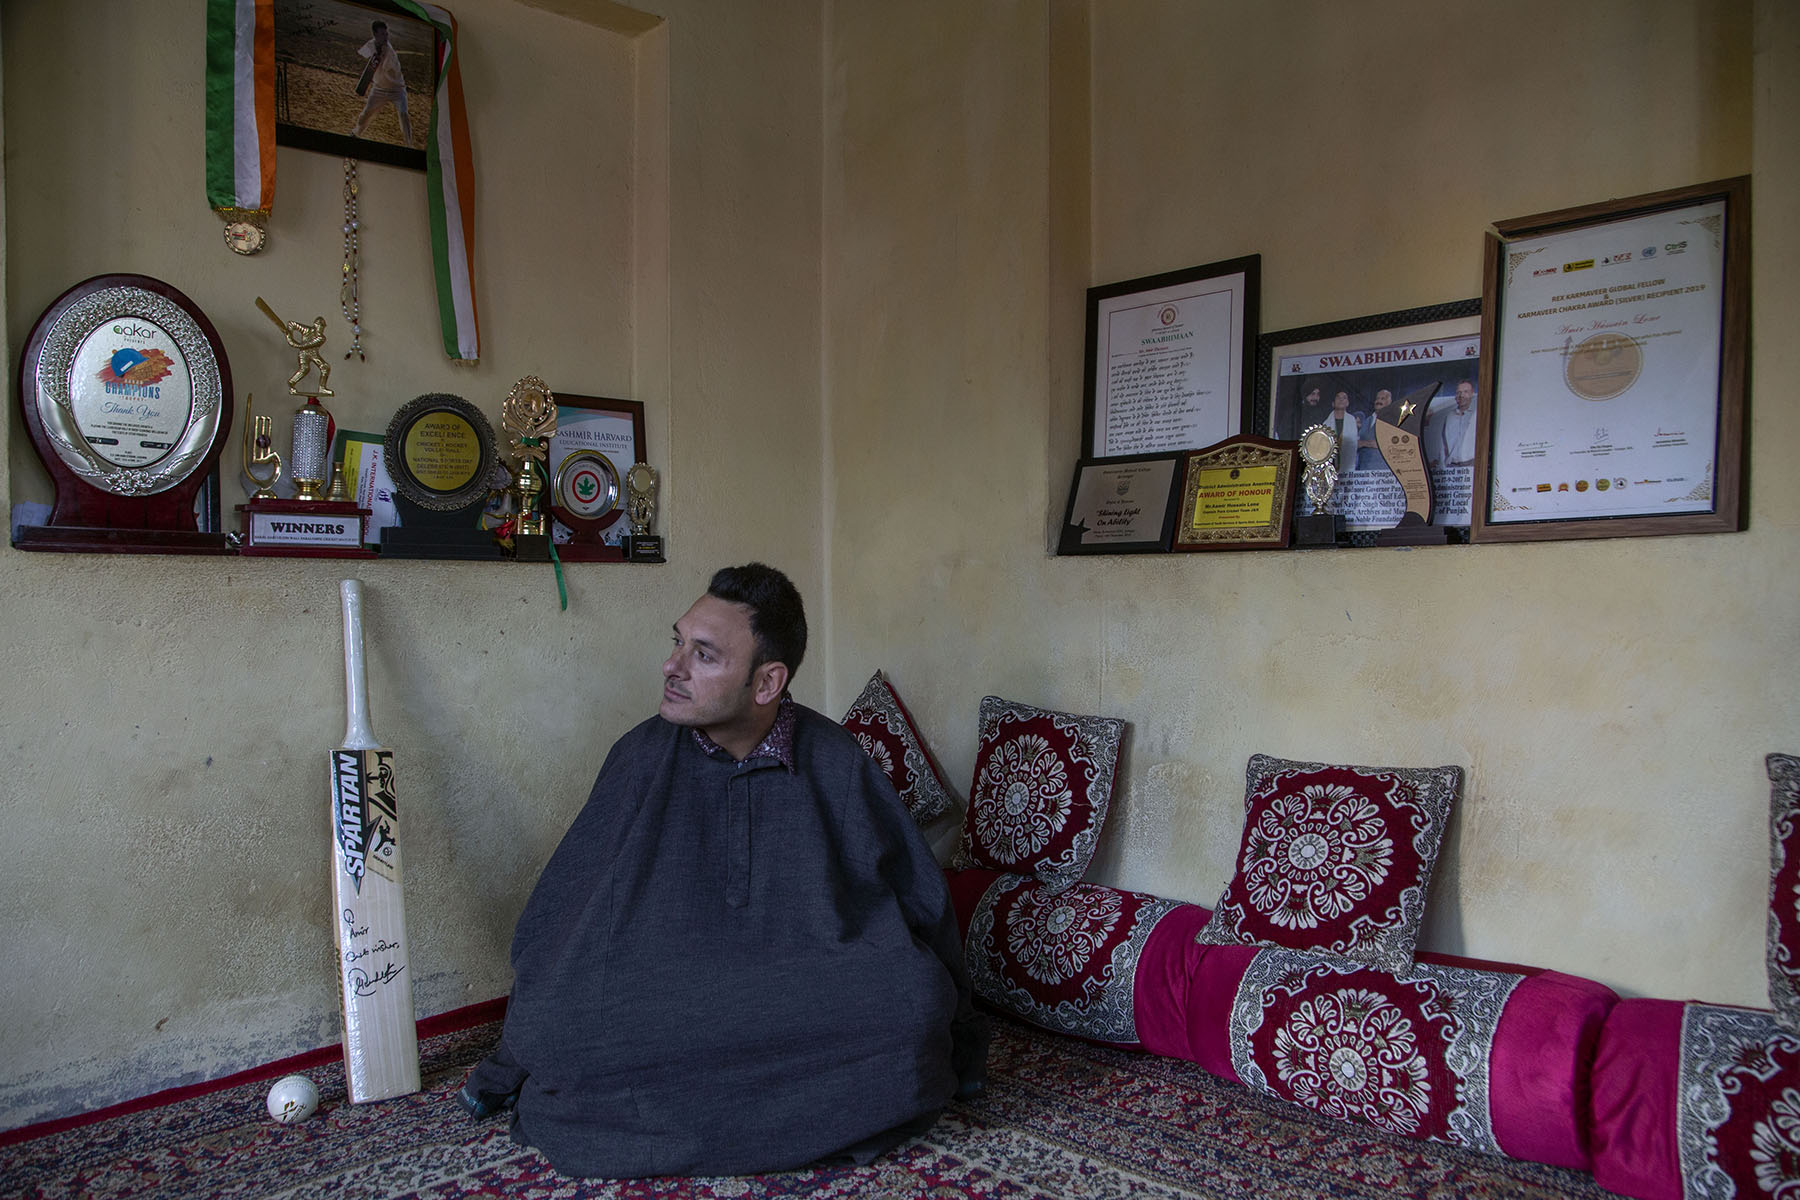 Amir enveloped in a grey pheran sits on a rug in a room that displays several framed awards and certificates, and medals hanging from ribbons. To his left is a white, autographed cricket bat propped up against the cream wall, next to a white cricket ball.